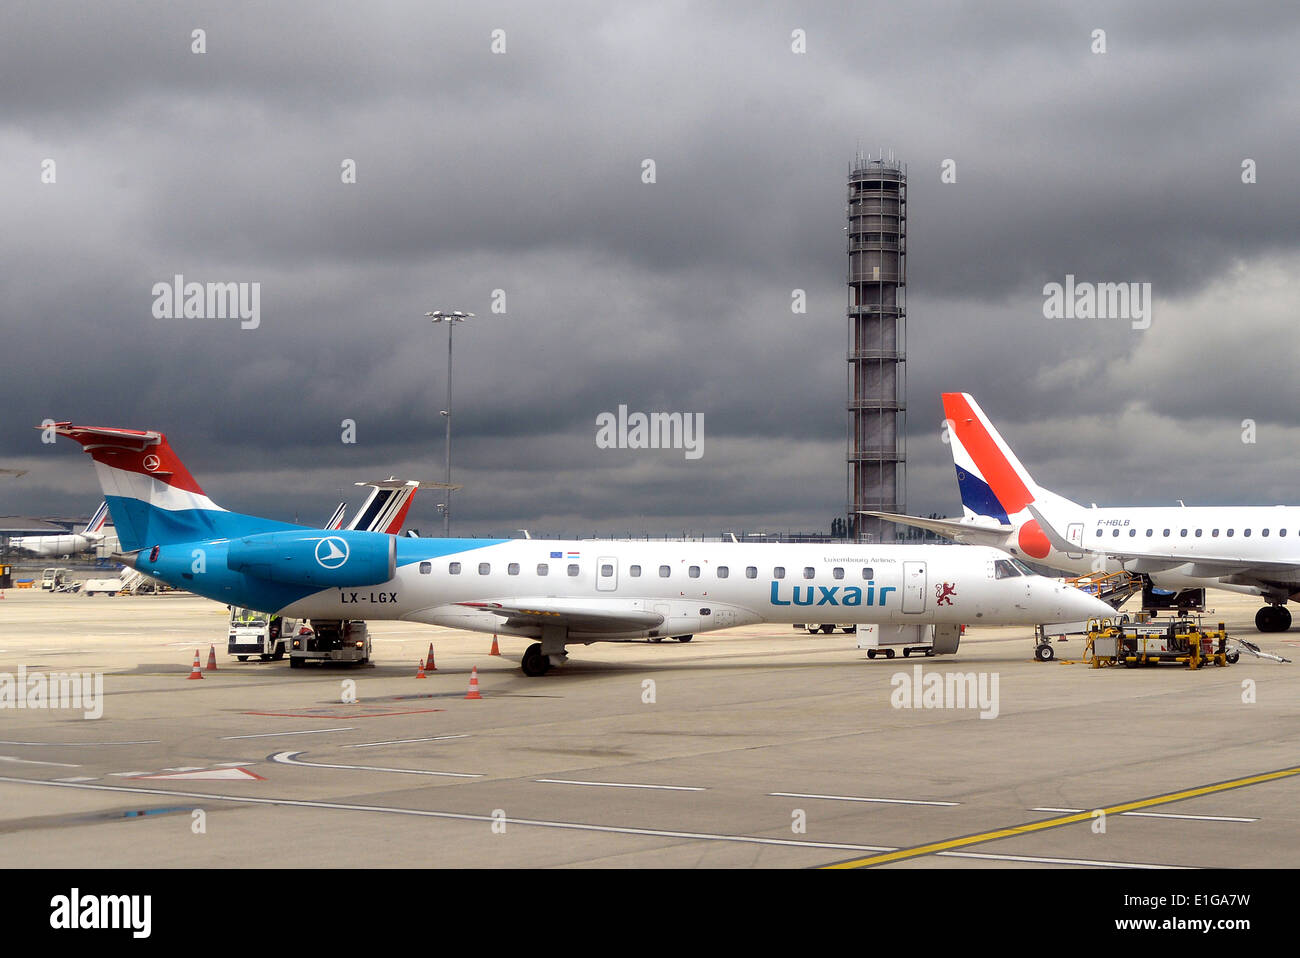 Embraer ERJ-145LU airplane of Luxair Roissy Charles-de-Gaulle international airport terminal G France - Stock Image